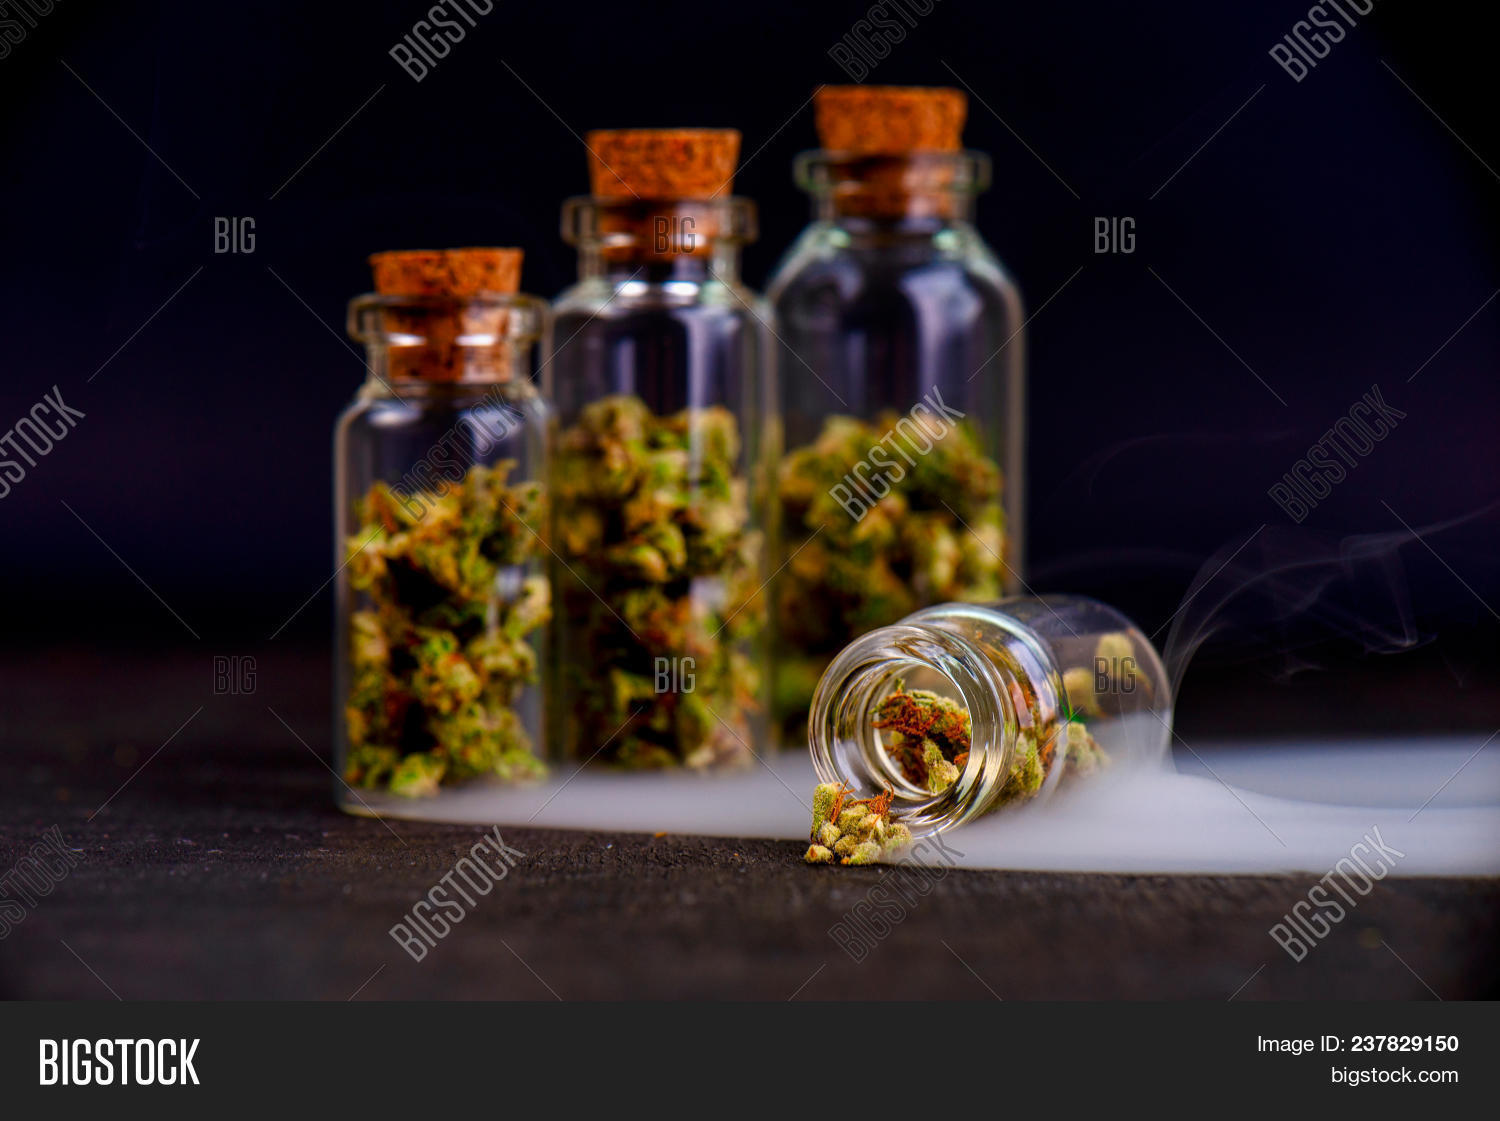 Detail Assorted Jars Image & Photo (Free Trial) | Bigstock